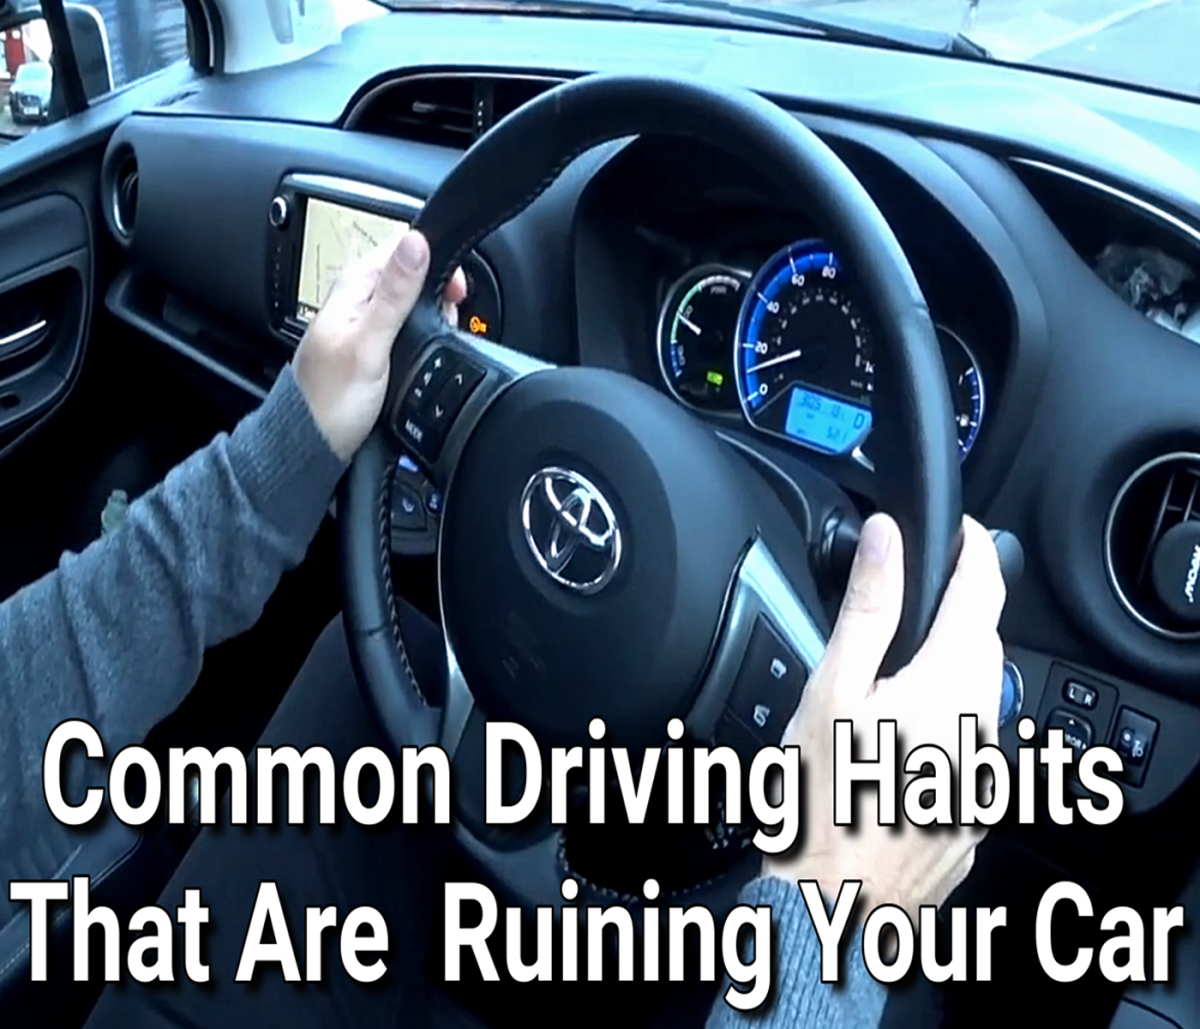 Common Driving Habits That Are Ruining Your Car